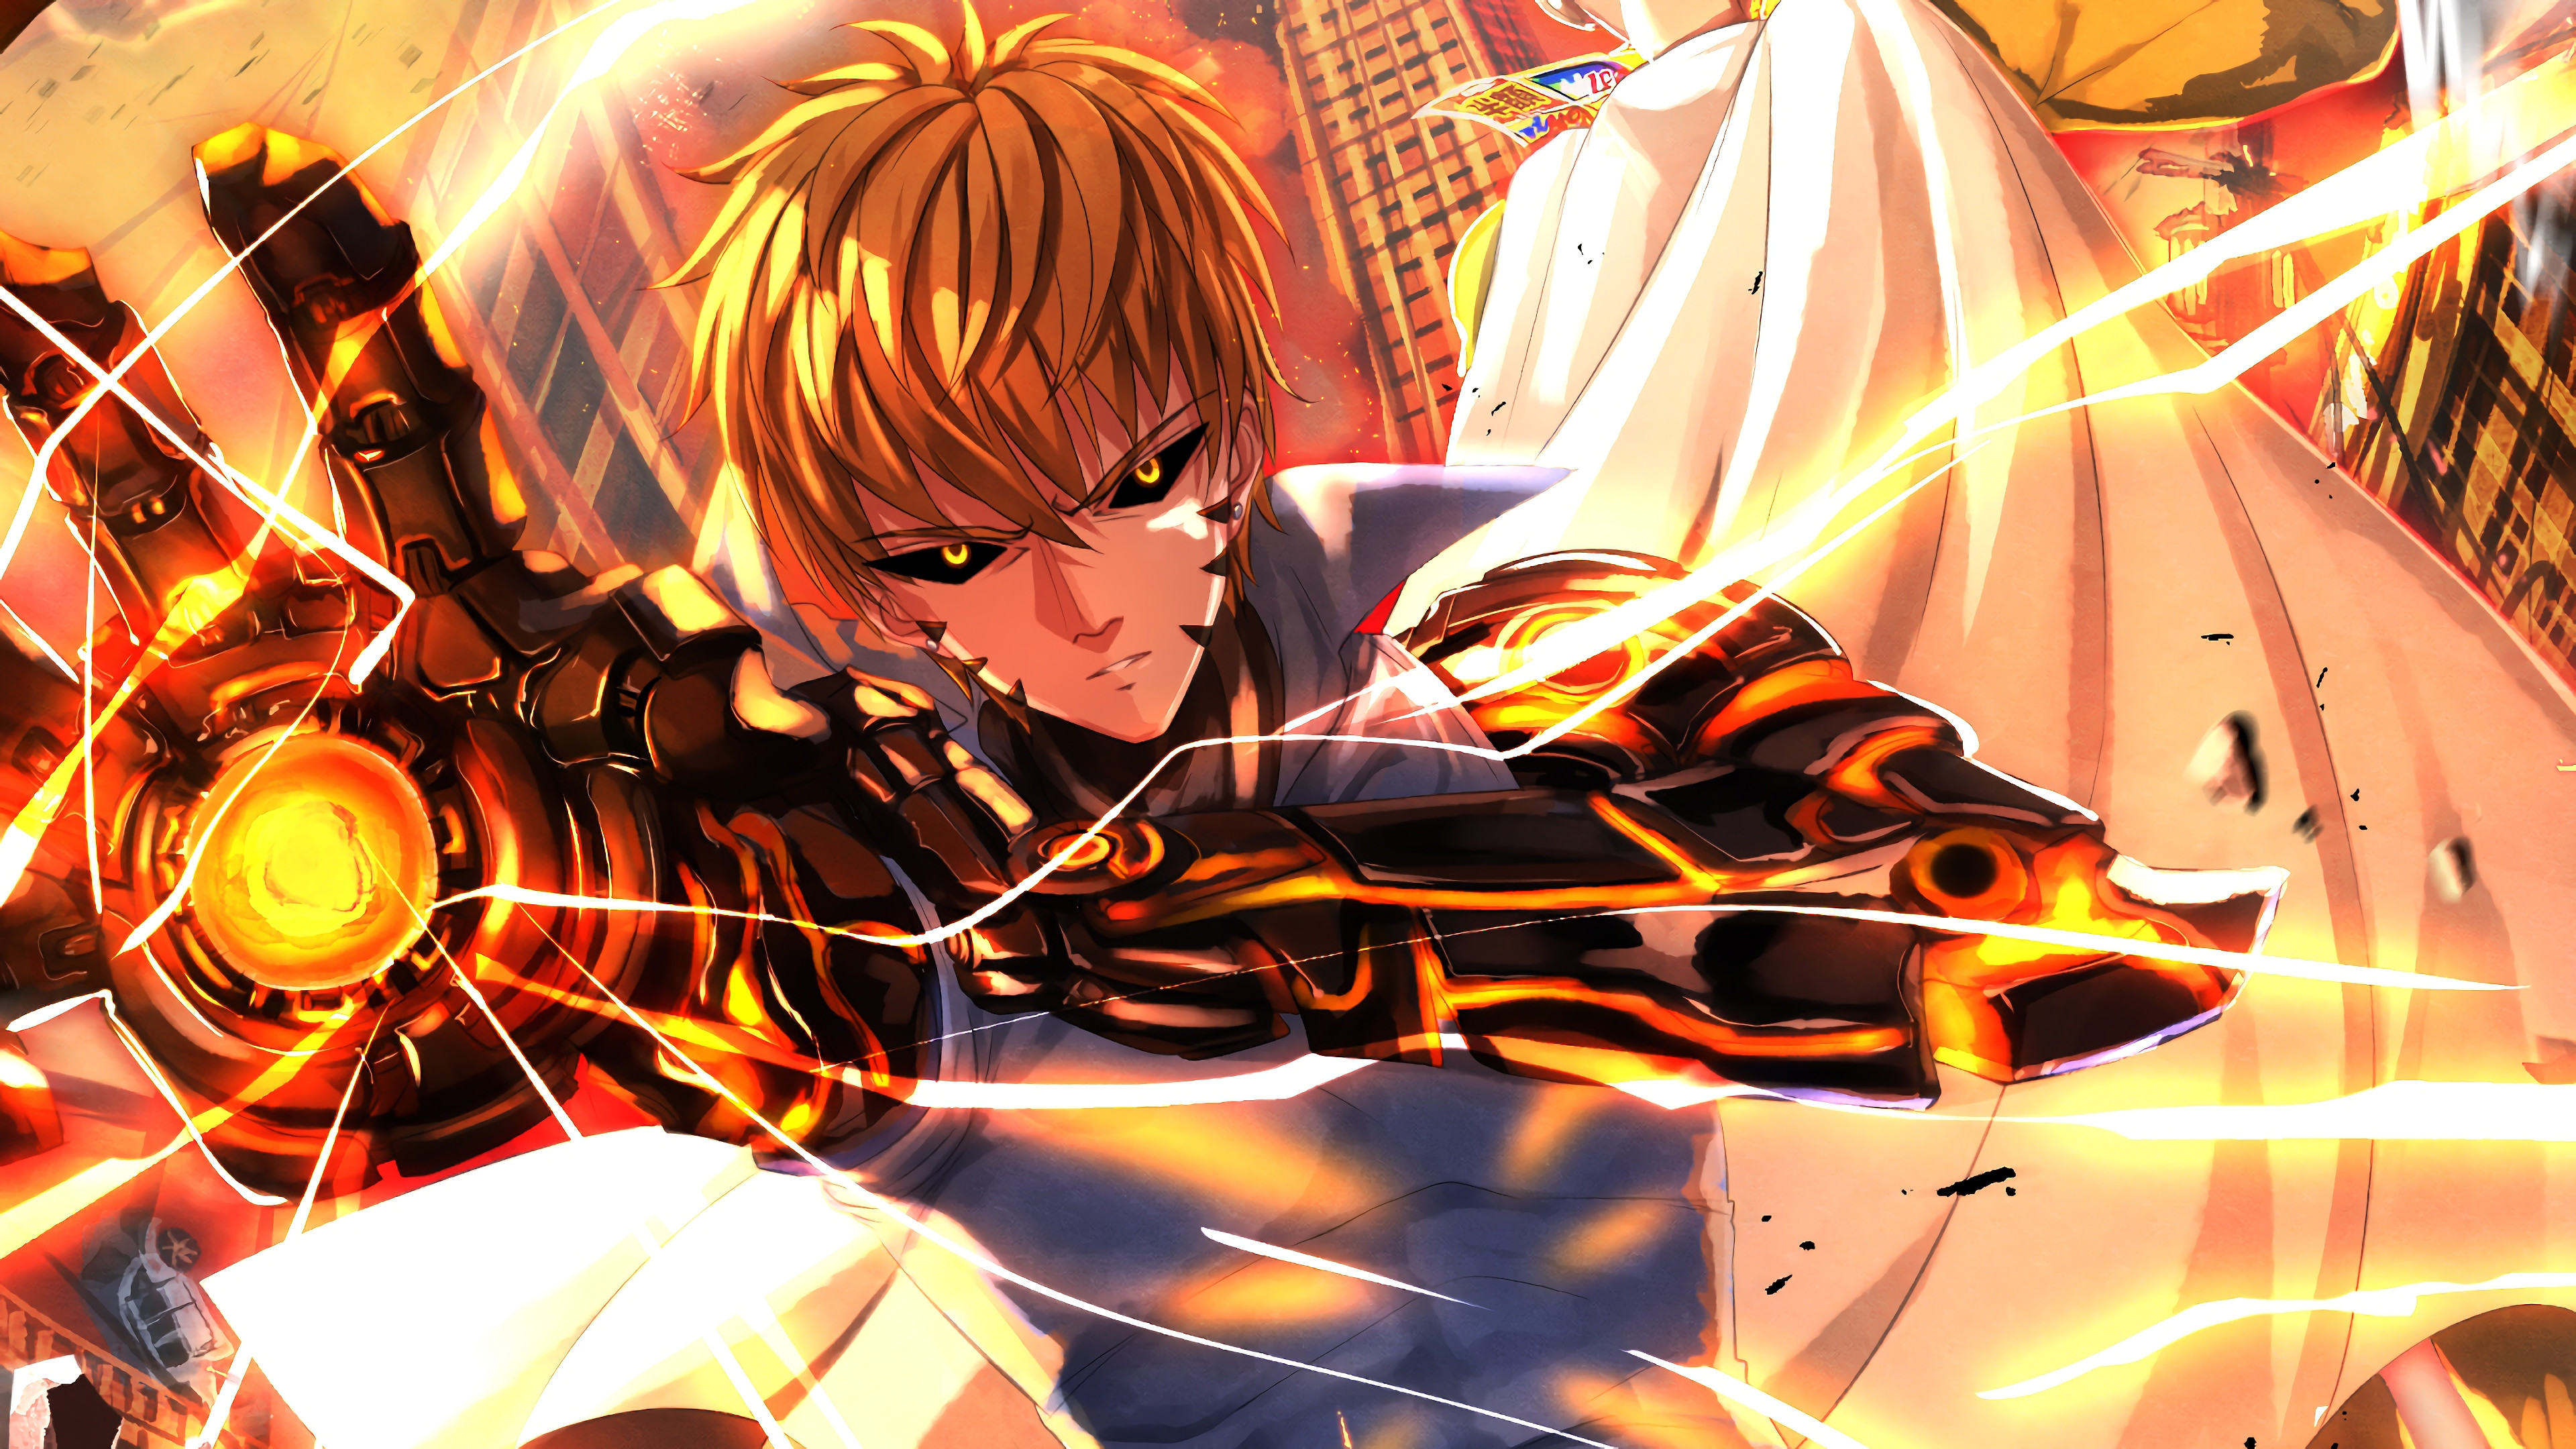 Genos One Punch Man Anime Wallpaper 4k Ultra Hd Id3220